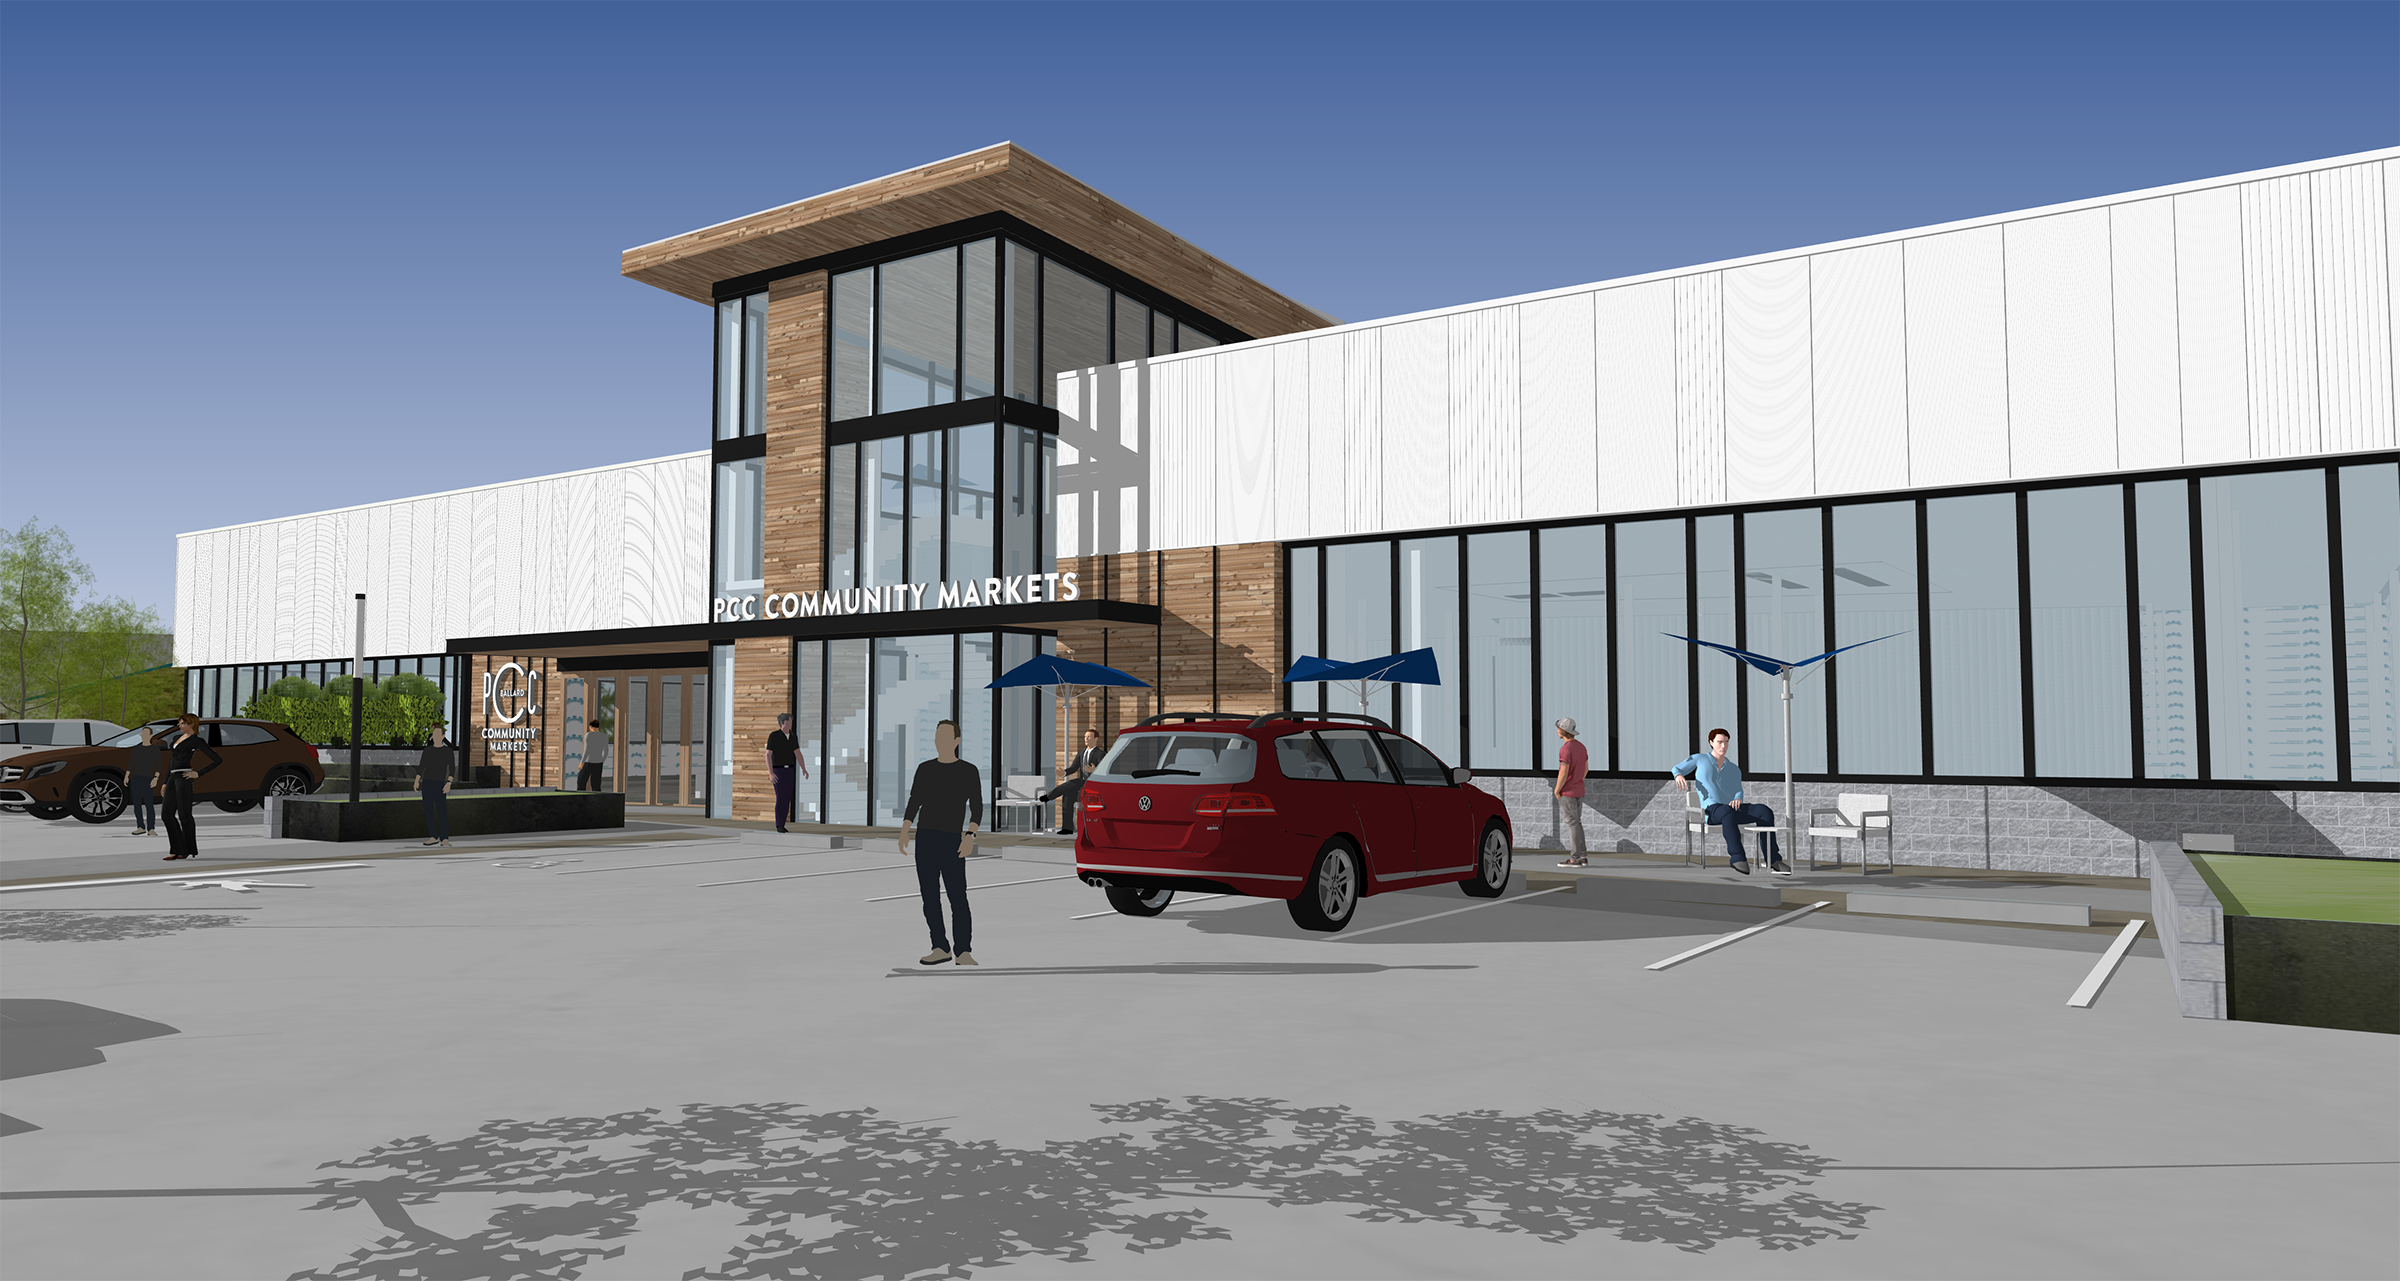 A computer rendering of Ballard's upcoming PCC Community Markets store, exterior with sign and digital people and cars milling around.